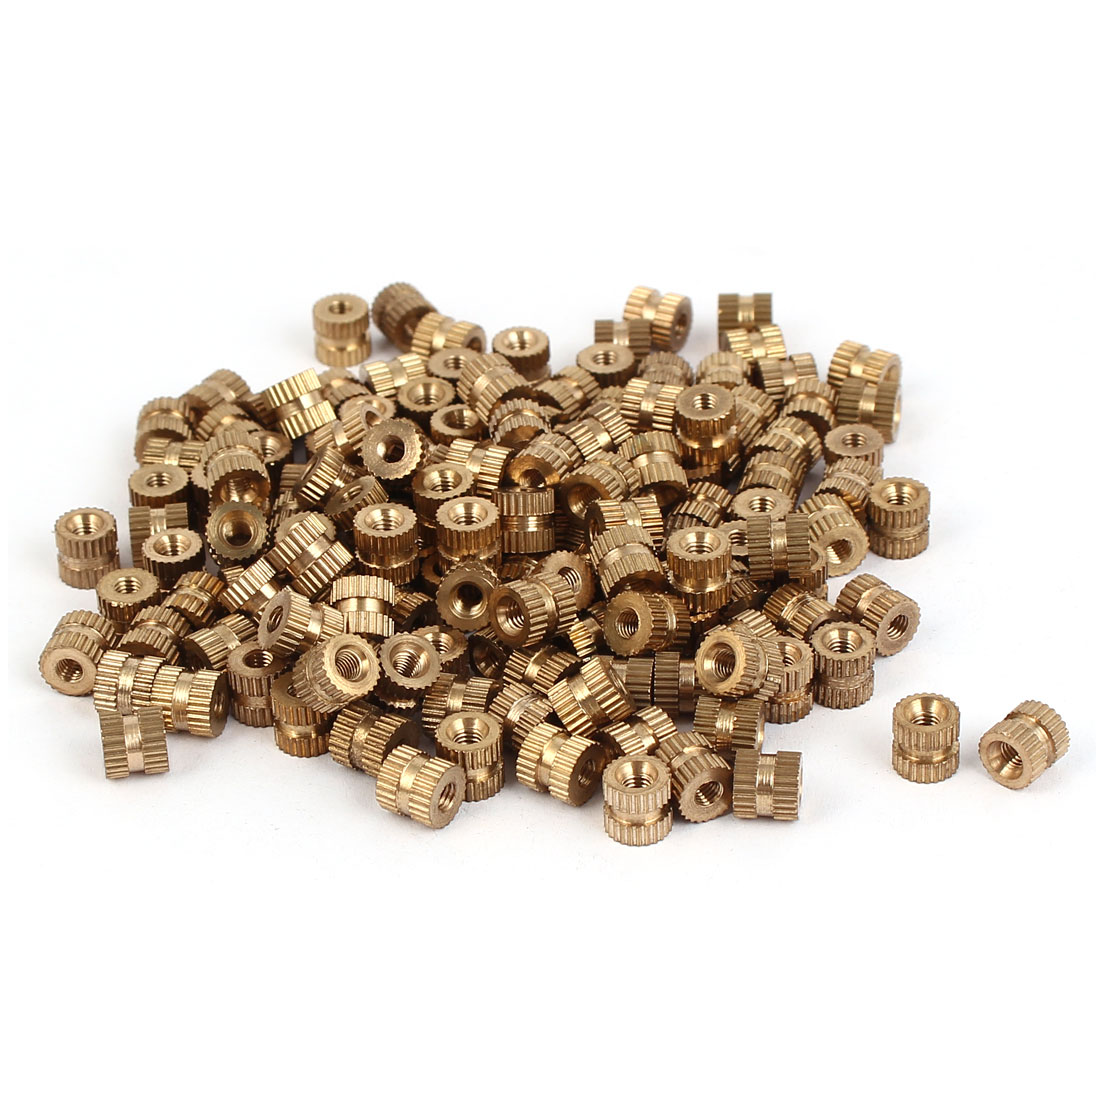 M3 x 6mm Brass Cylinder Knurled Threaded Round Insert Embedded Nuts 200PCS